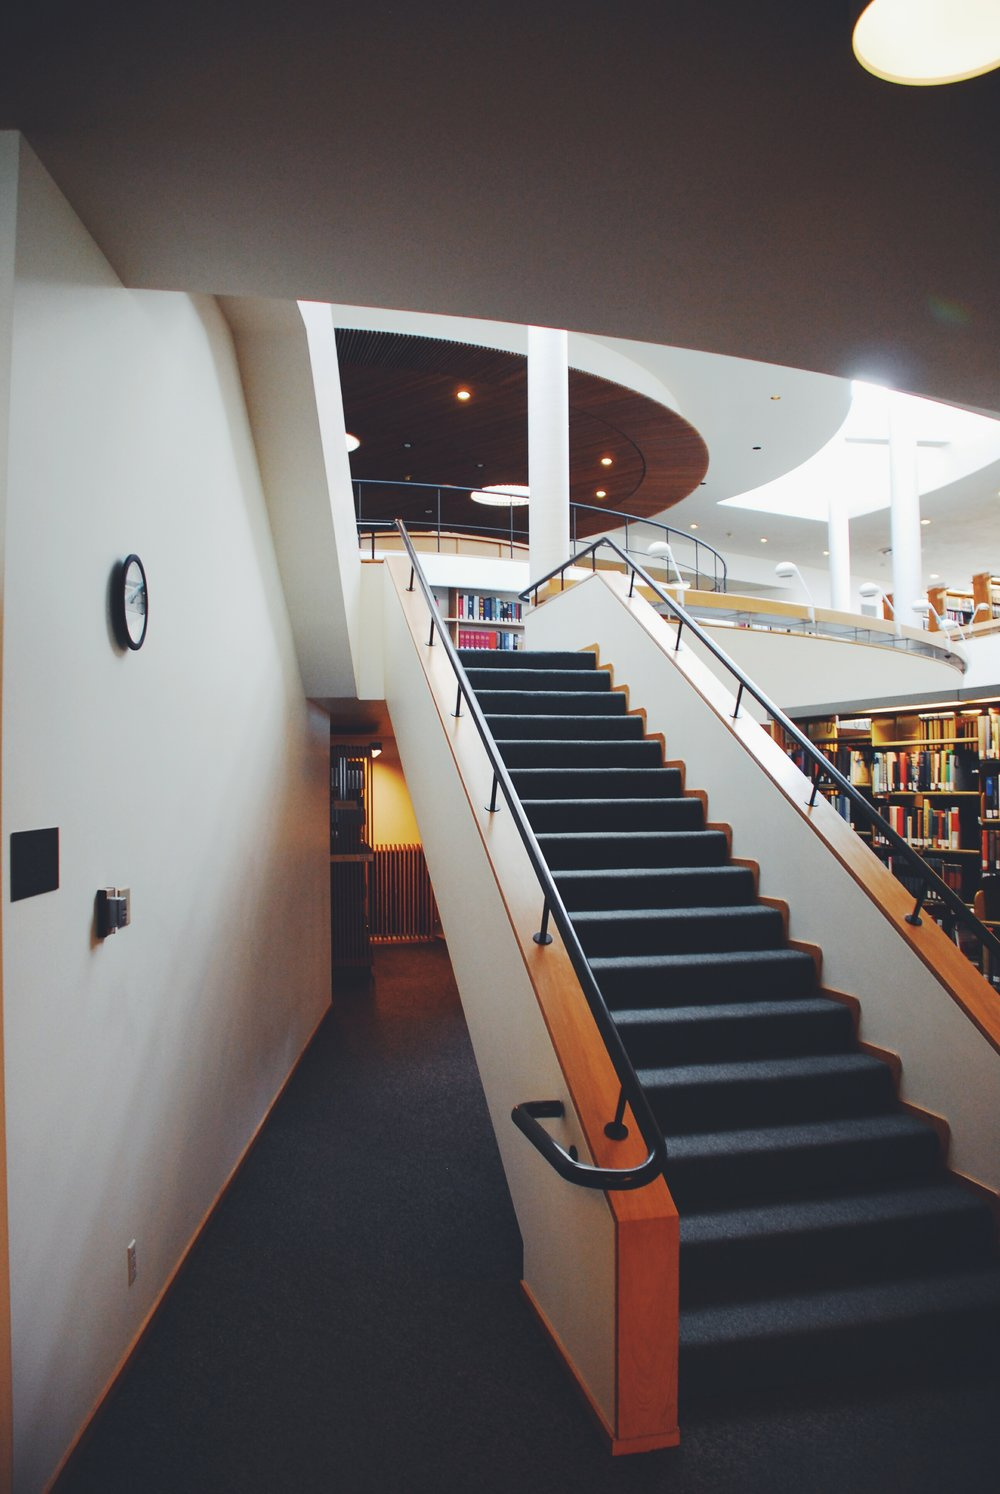 MAISON-ORION_ALVAR-AALTO_MT-ANGEL-LIBRARY_18.jpg